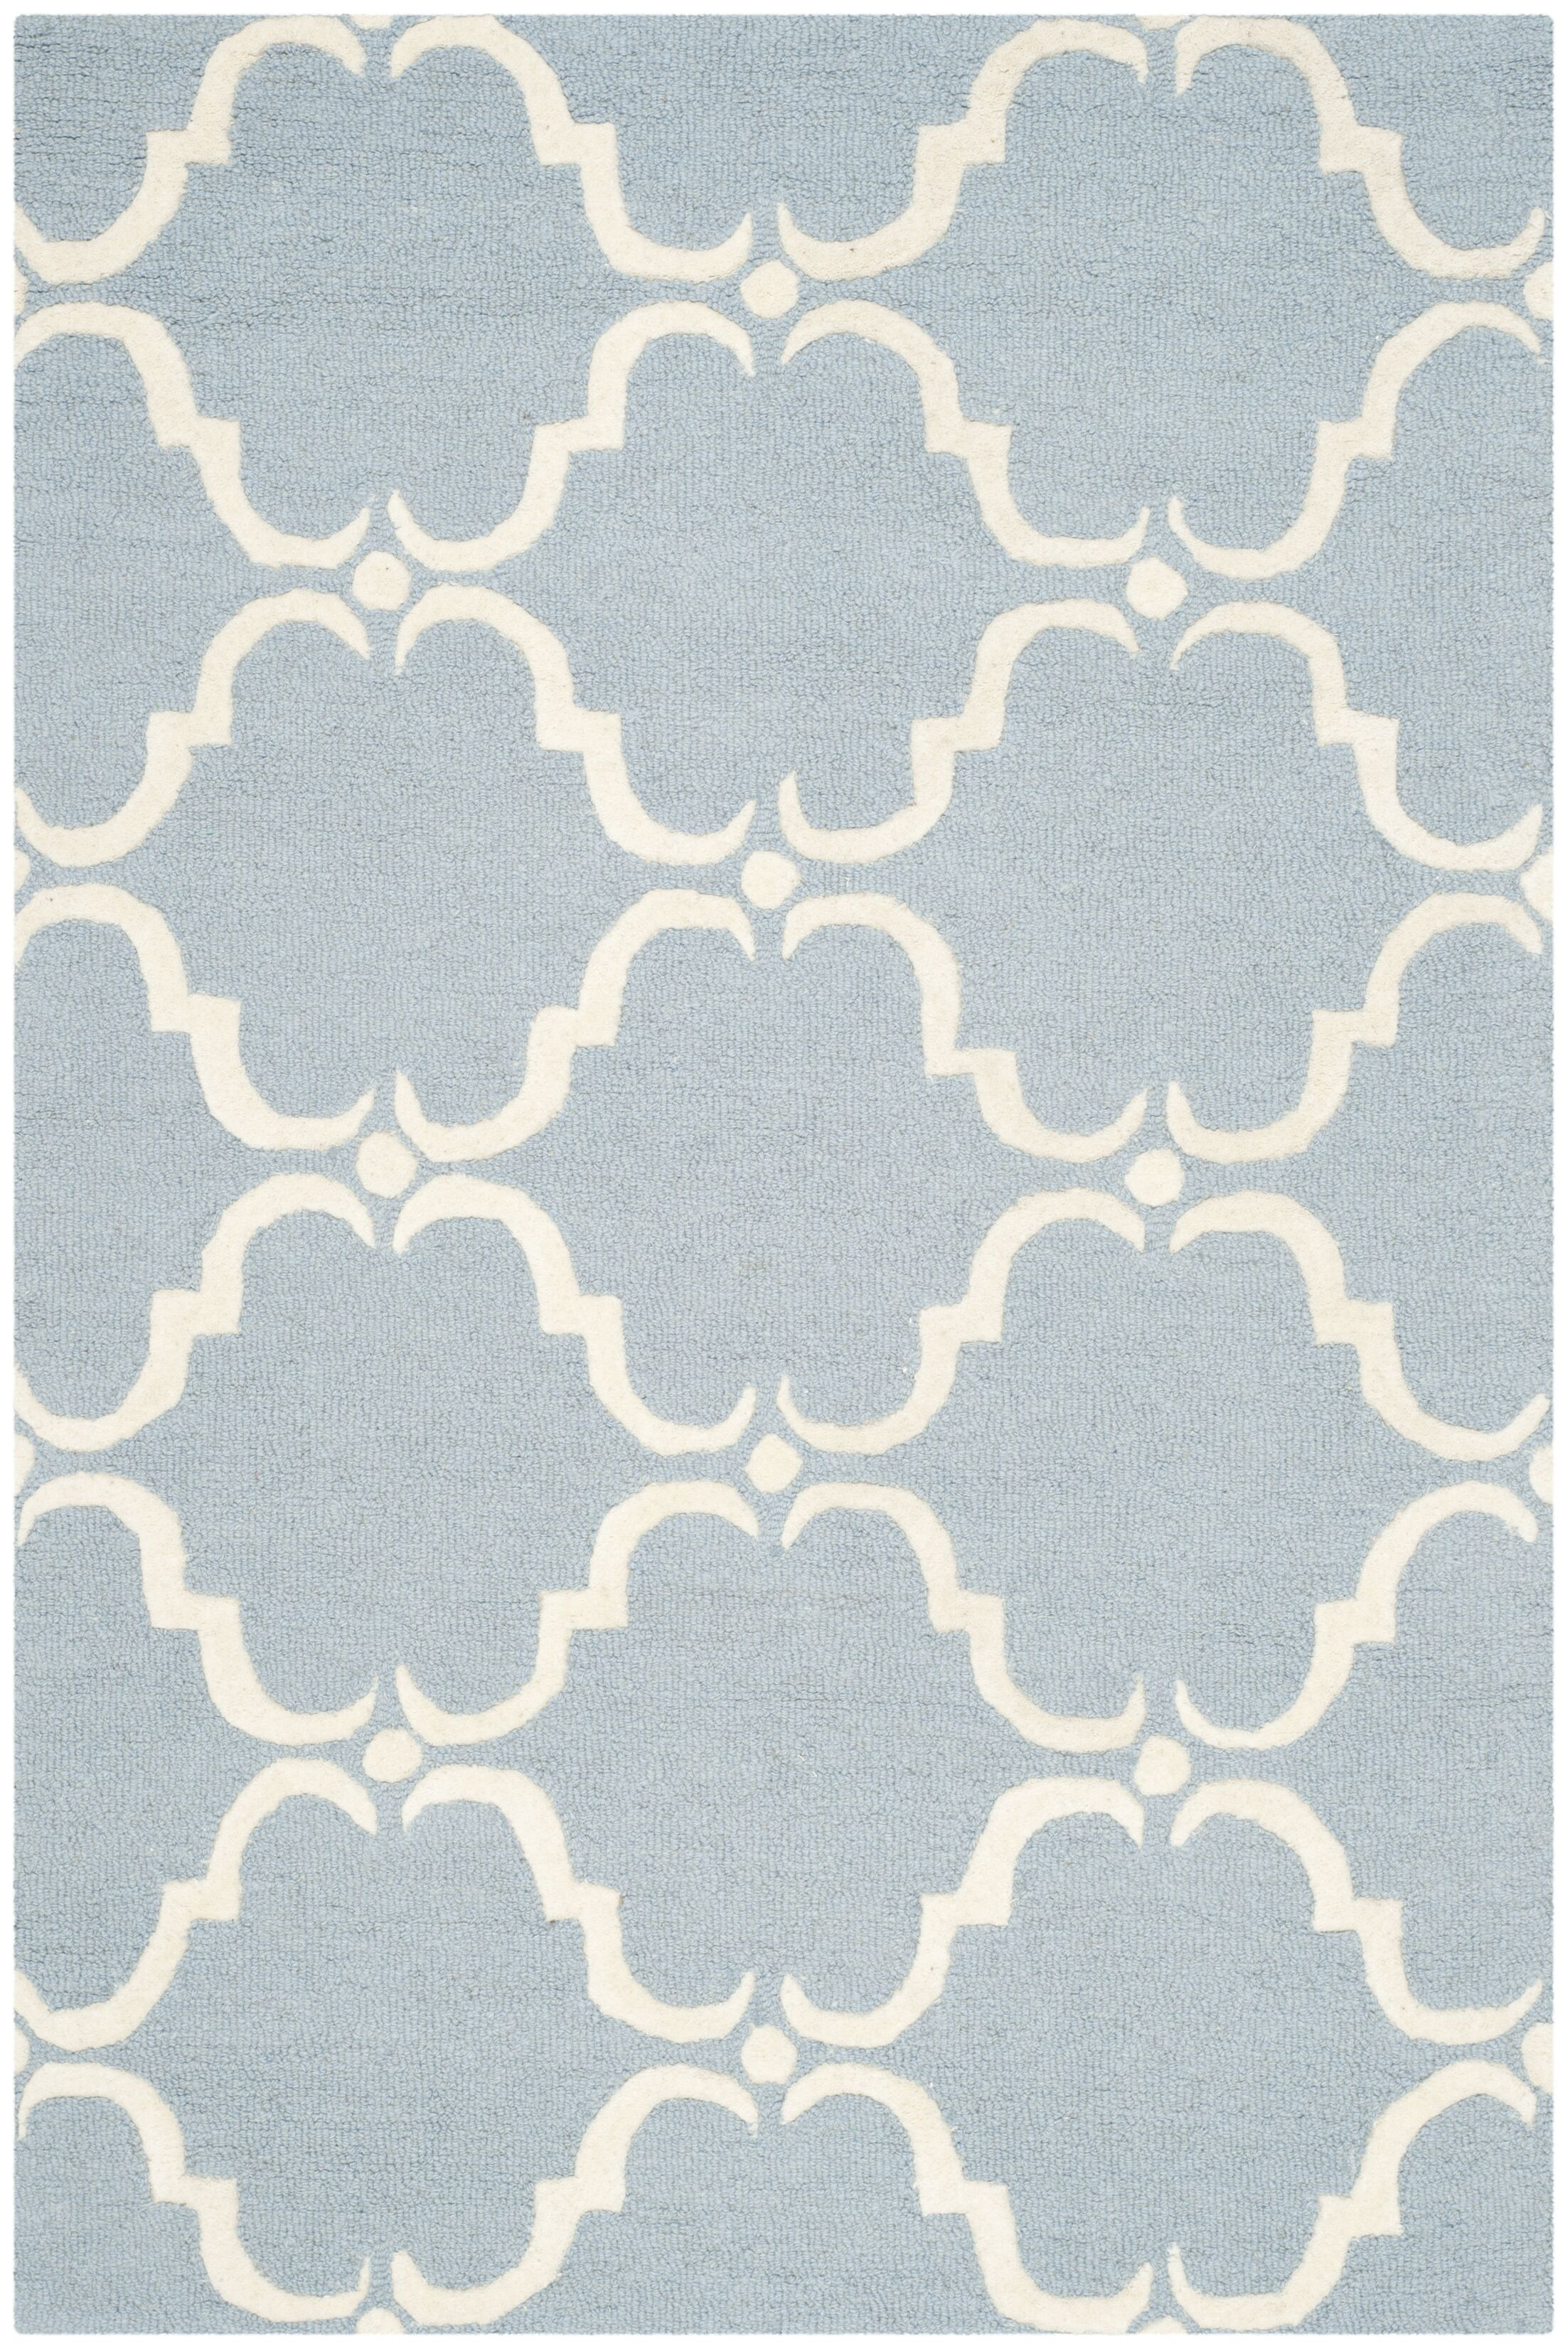 Cambridge Tufted Wool Blue/Ivory Area Rug Rug Size: Runner 2'6